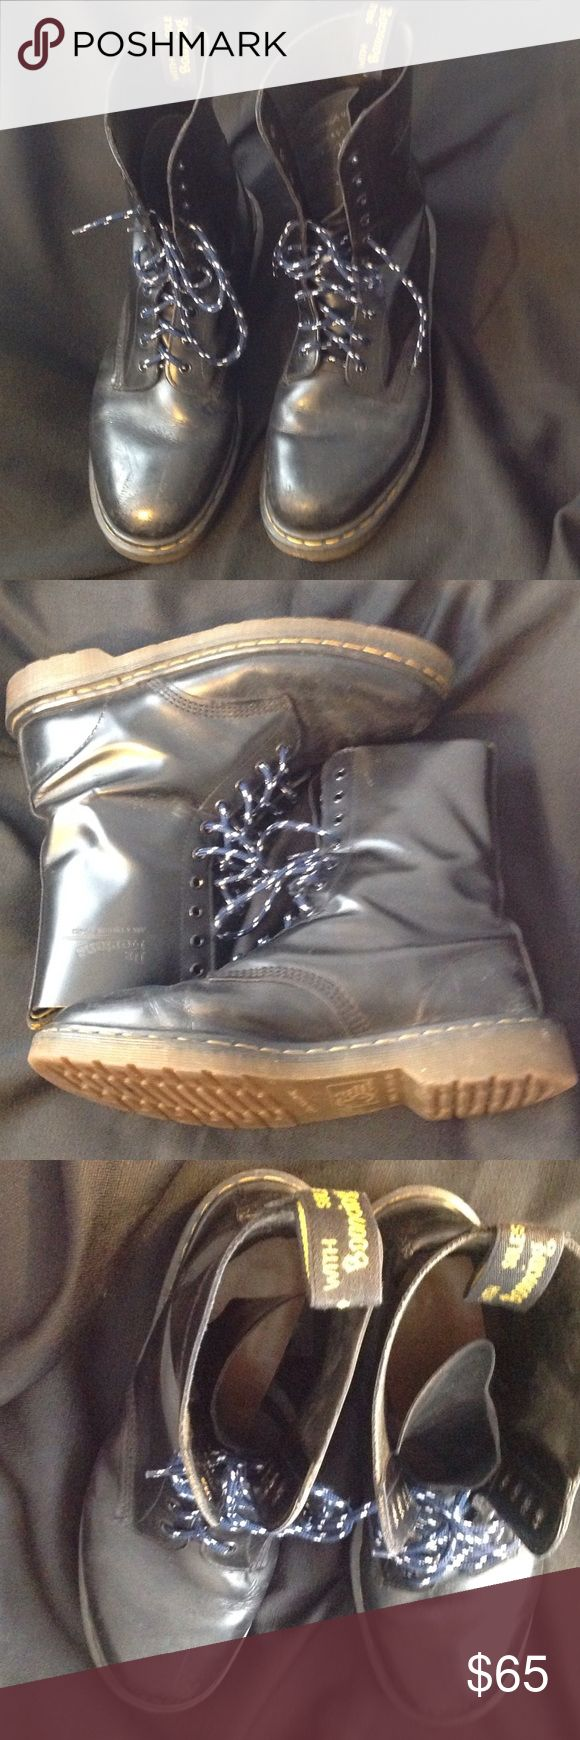 """Black Dr Martens Boots Made in England..Genuine DocMartens....AirWair.9"""" tall...great condition.no sole wear. Dr. Martens Shoes Boots"""